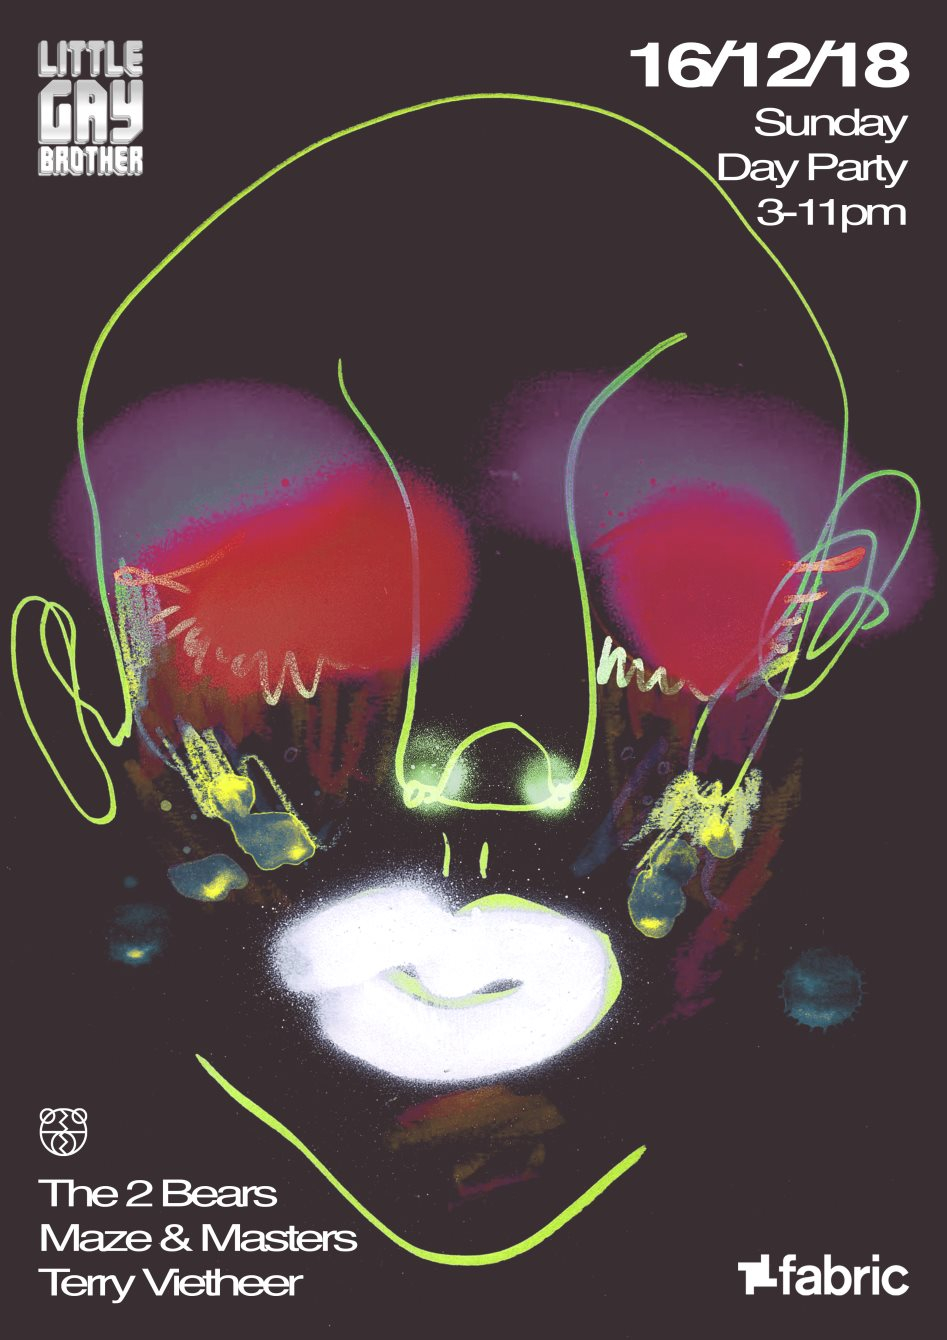 Sundays at fabric: Little Gay Brother Christmas Rave with The 2 Bears, Maze & Masters - Flyer back